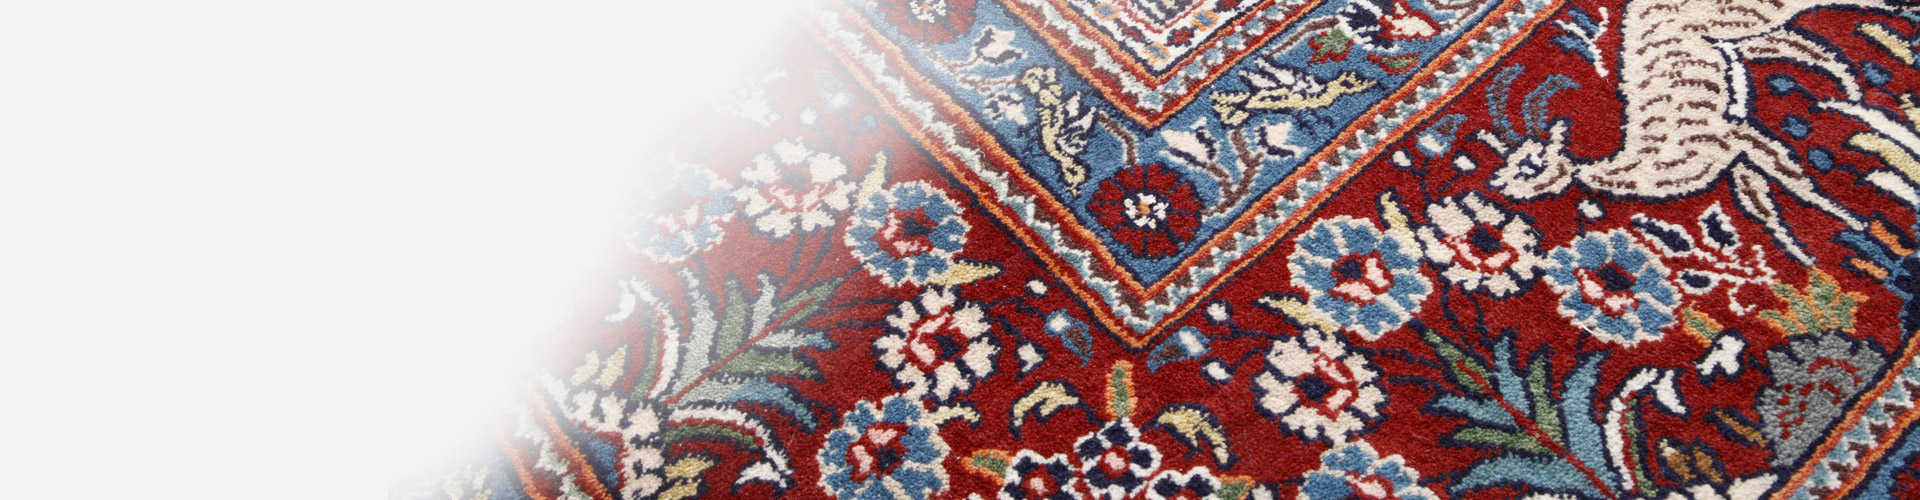 Persian Rug Cleaning Oriental Area Rug Cleaning New